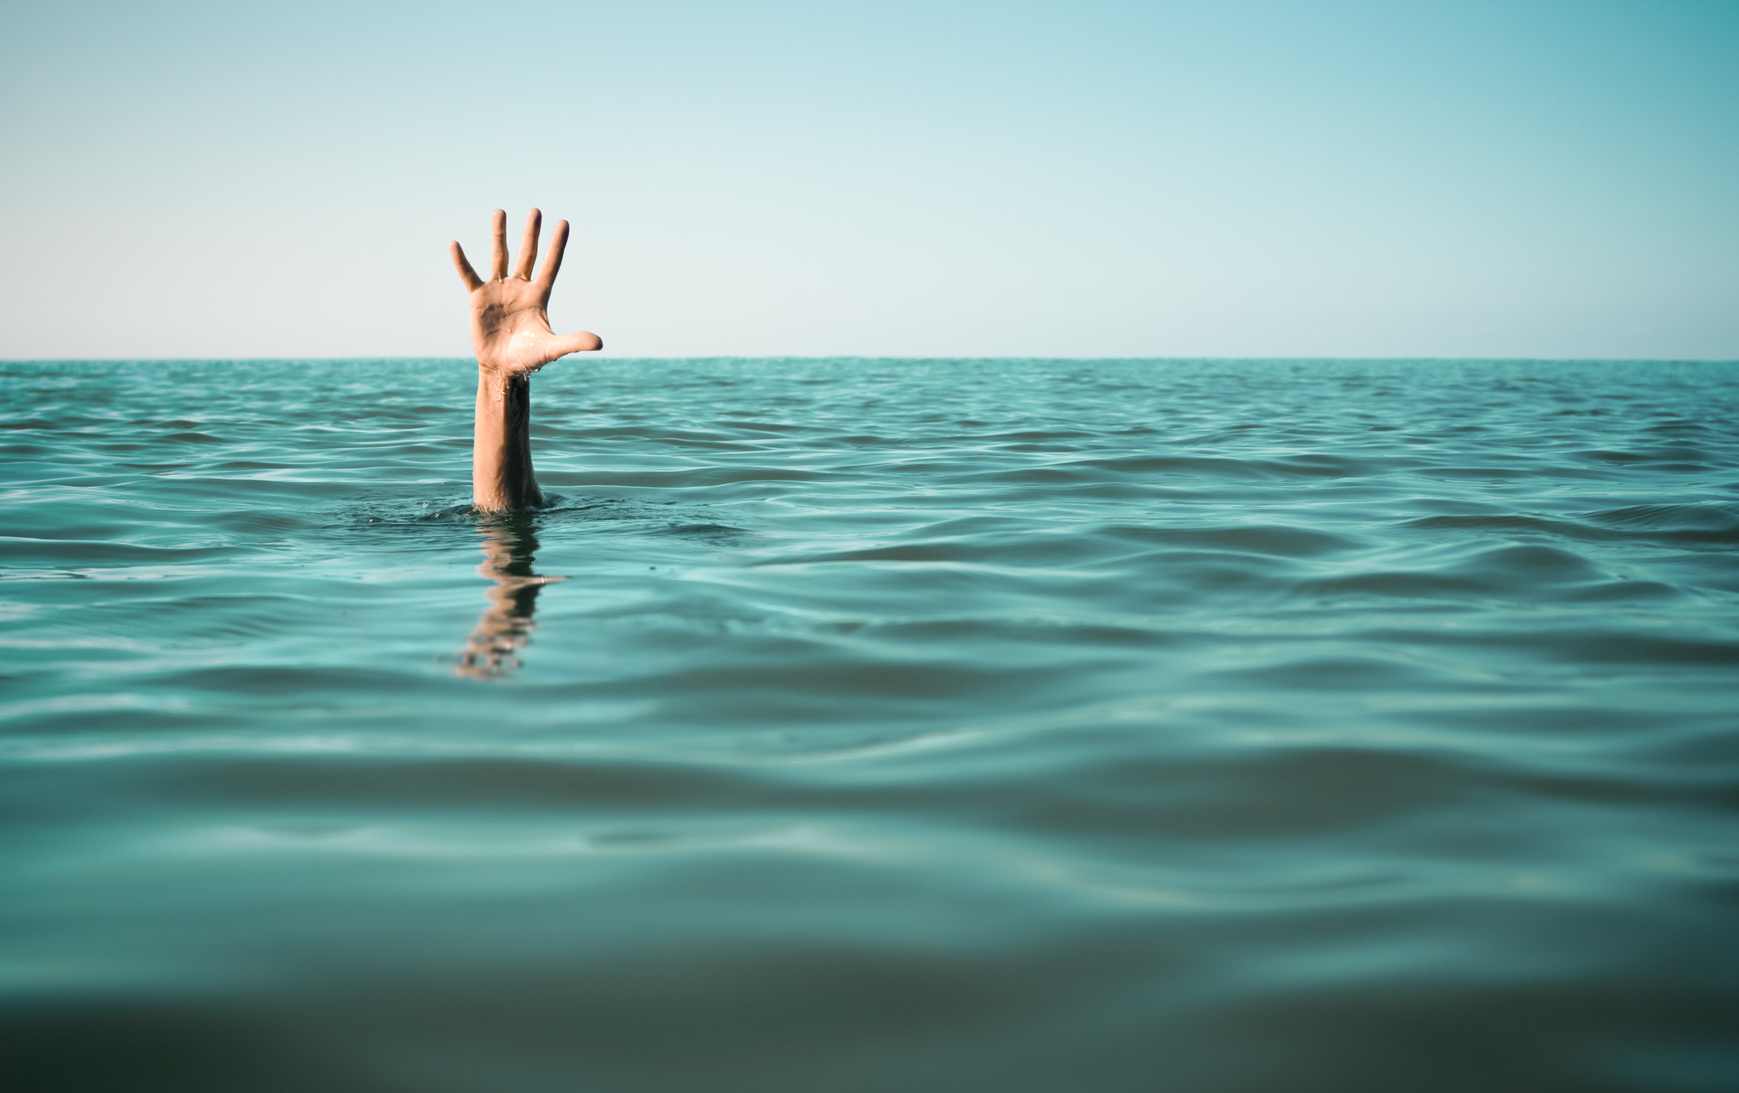 Hand in sea water asking for help.